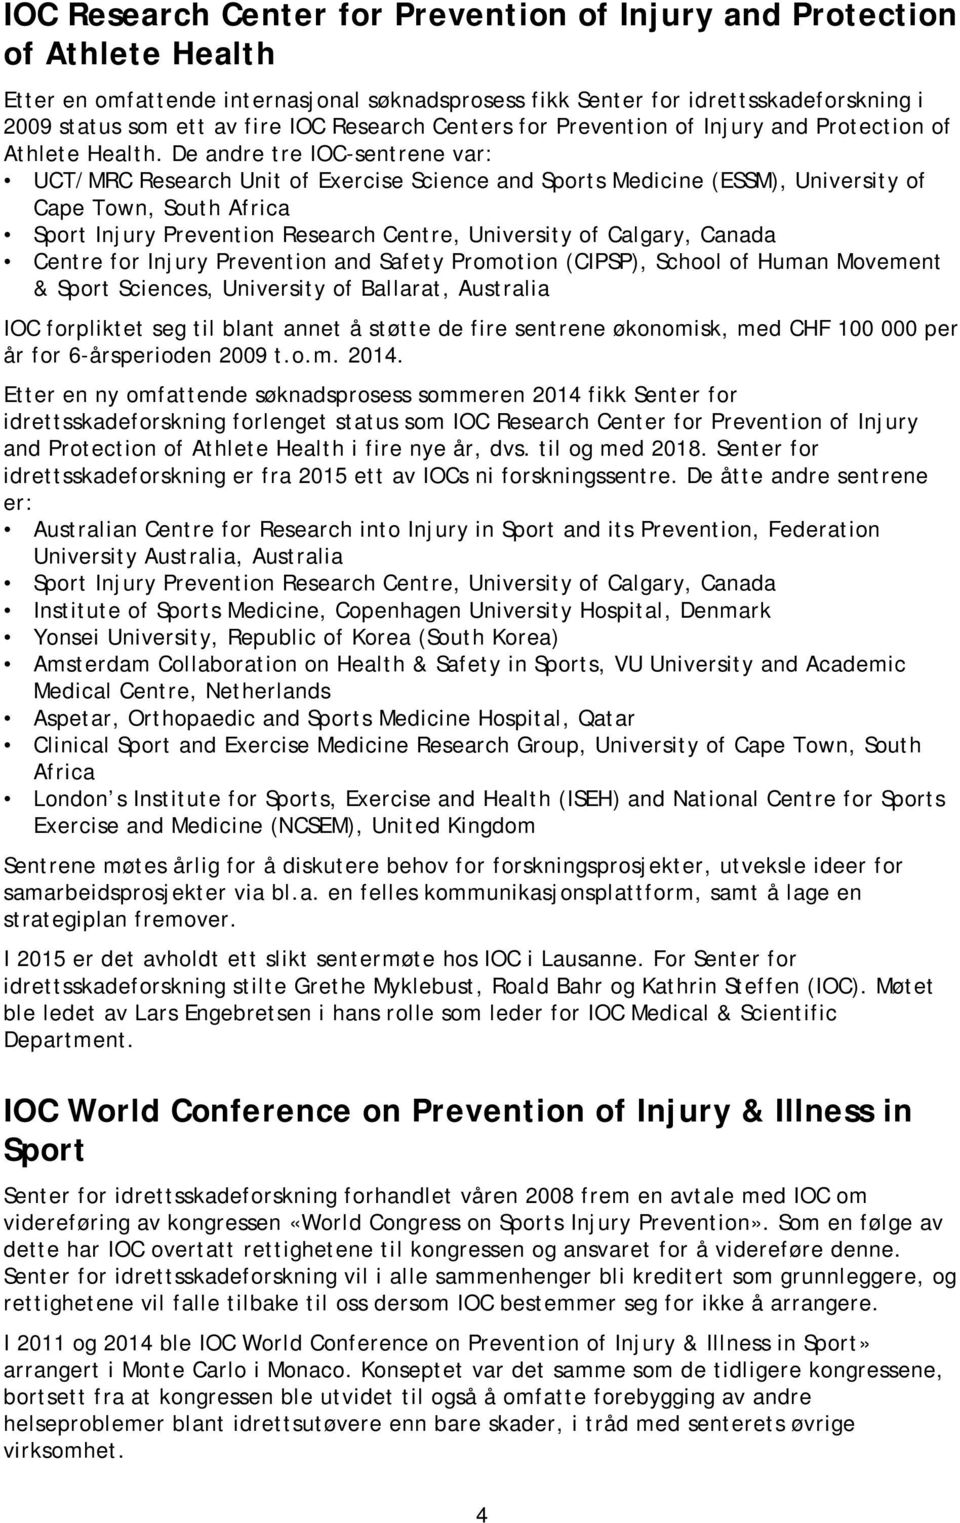 De andre tre IOC-sentrene var: UCT/MRC Research Unit of Exercise Science and Sports Medicine (ESSM), University of Cape Town, South Africa Sport Injury Prevention Research Centre, University of